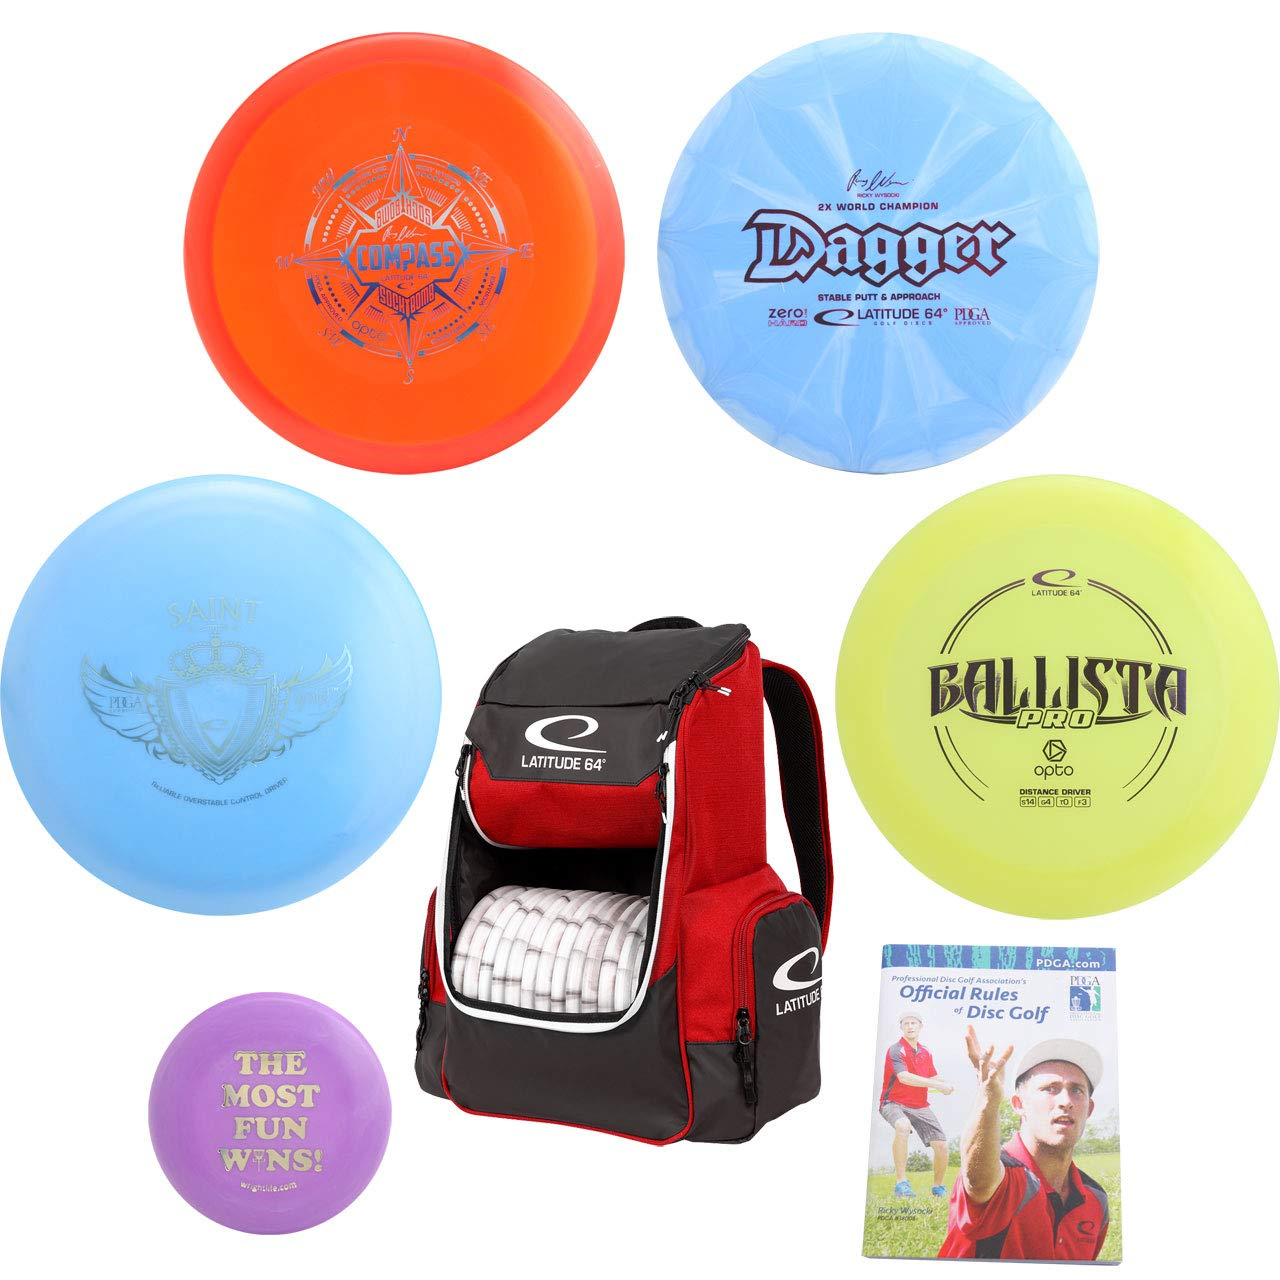 Latitude 64° Complete Disc Golf Gift Set - Core Backpack Bag + 4 Best Discs, Rules Book and Mini Marker Disc (7 Items, Colors May Vary) (Bag: Black)